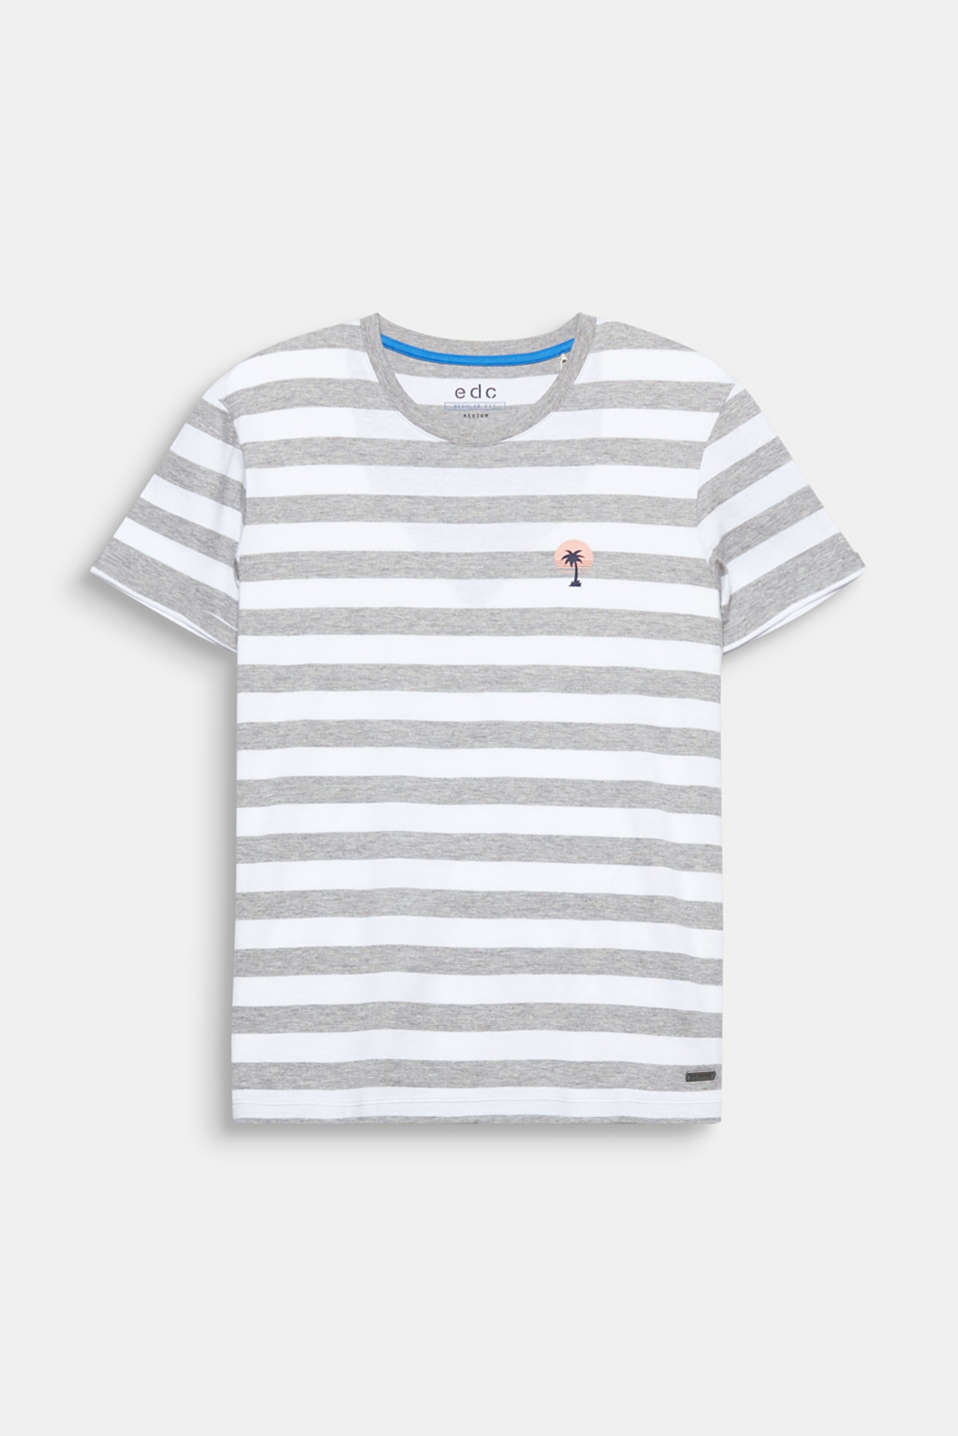 The small palm print on the left-hand side of the chest makes this sporty, striped T-shirt look absolutely stunning.